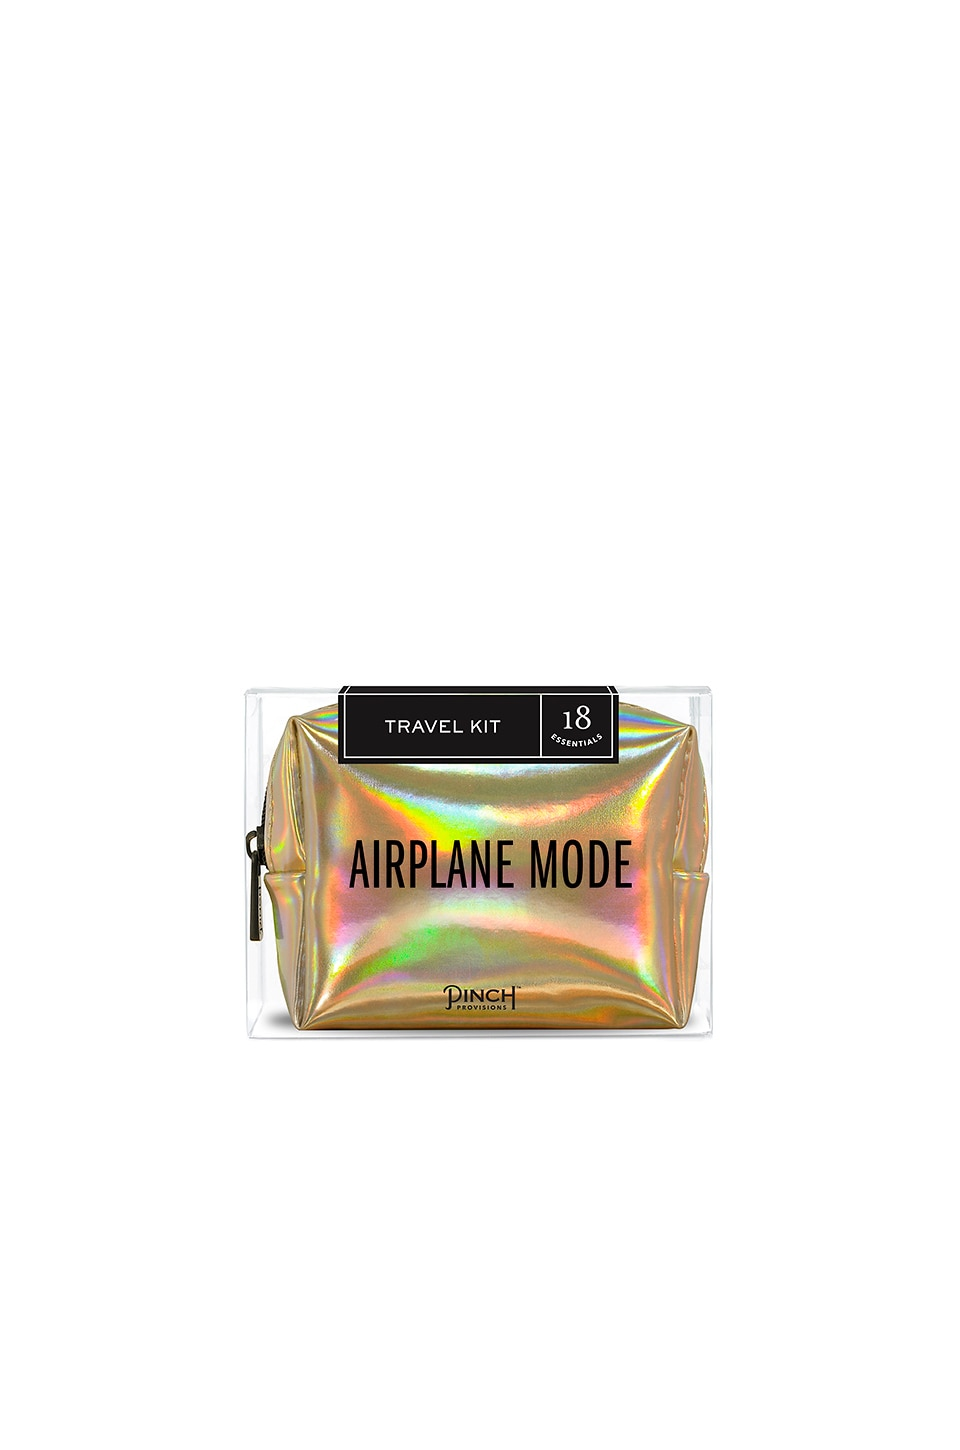 Pinch Provisions Airplane Mode Travel Kit in Gold Hologram